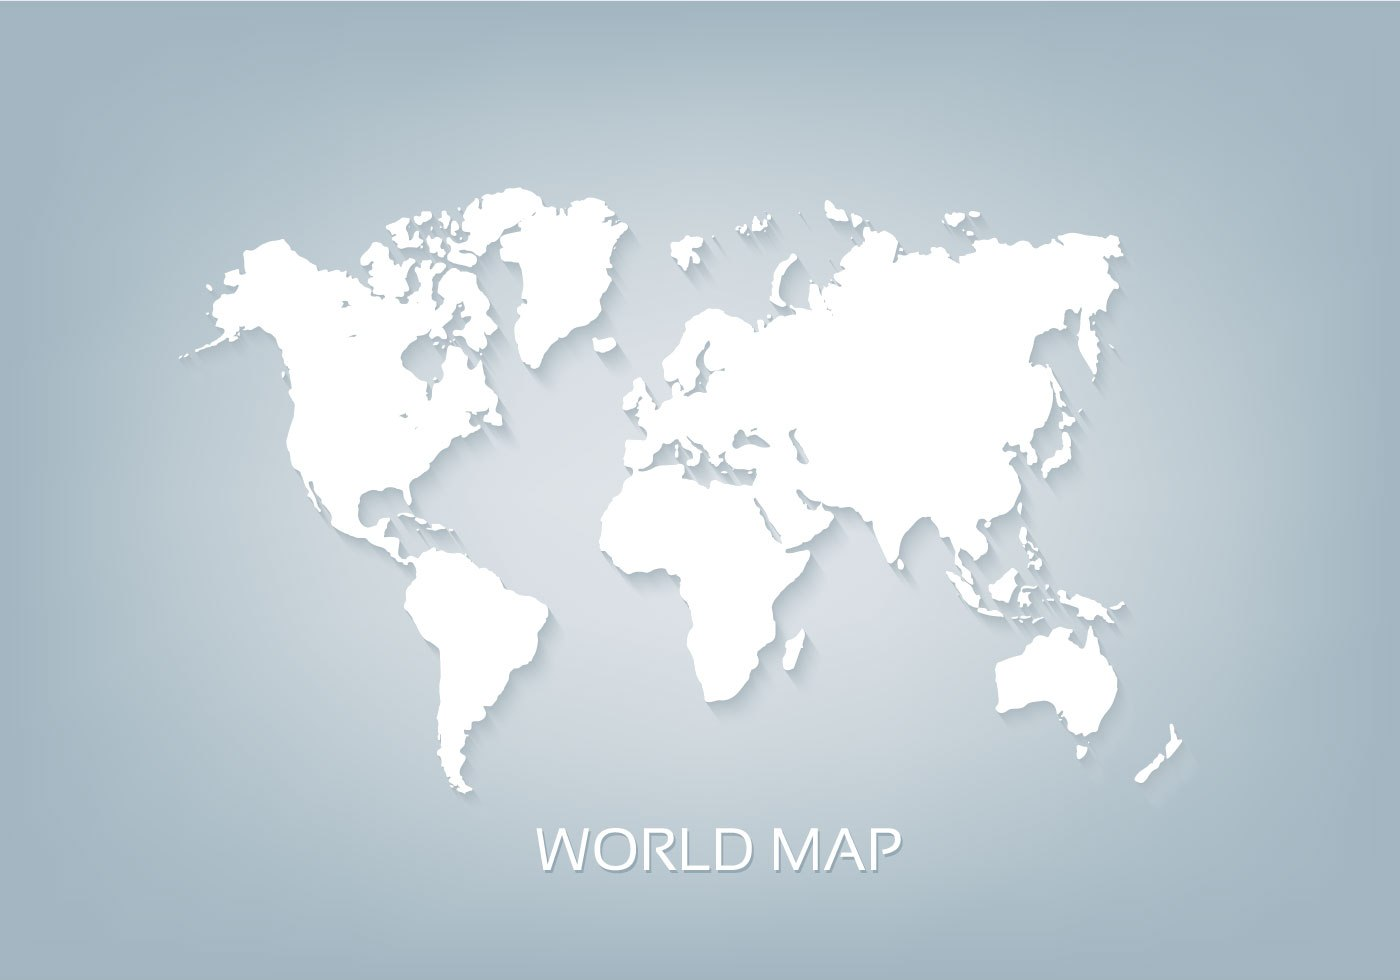 Free Vector World Map White 3D Download Free Vector Art Stock Graphics am